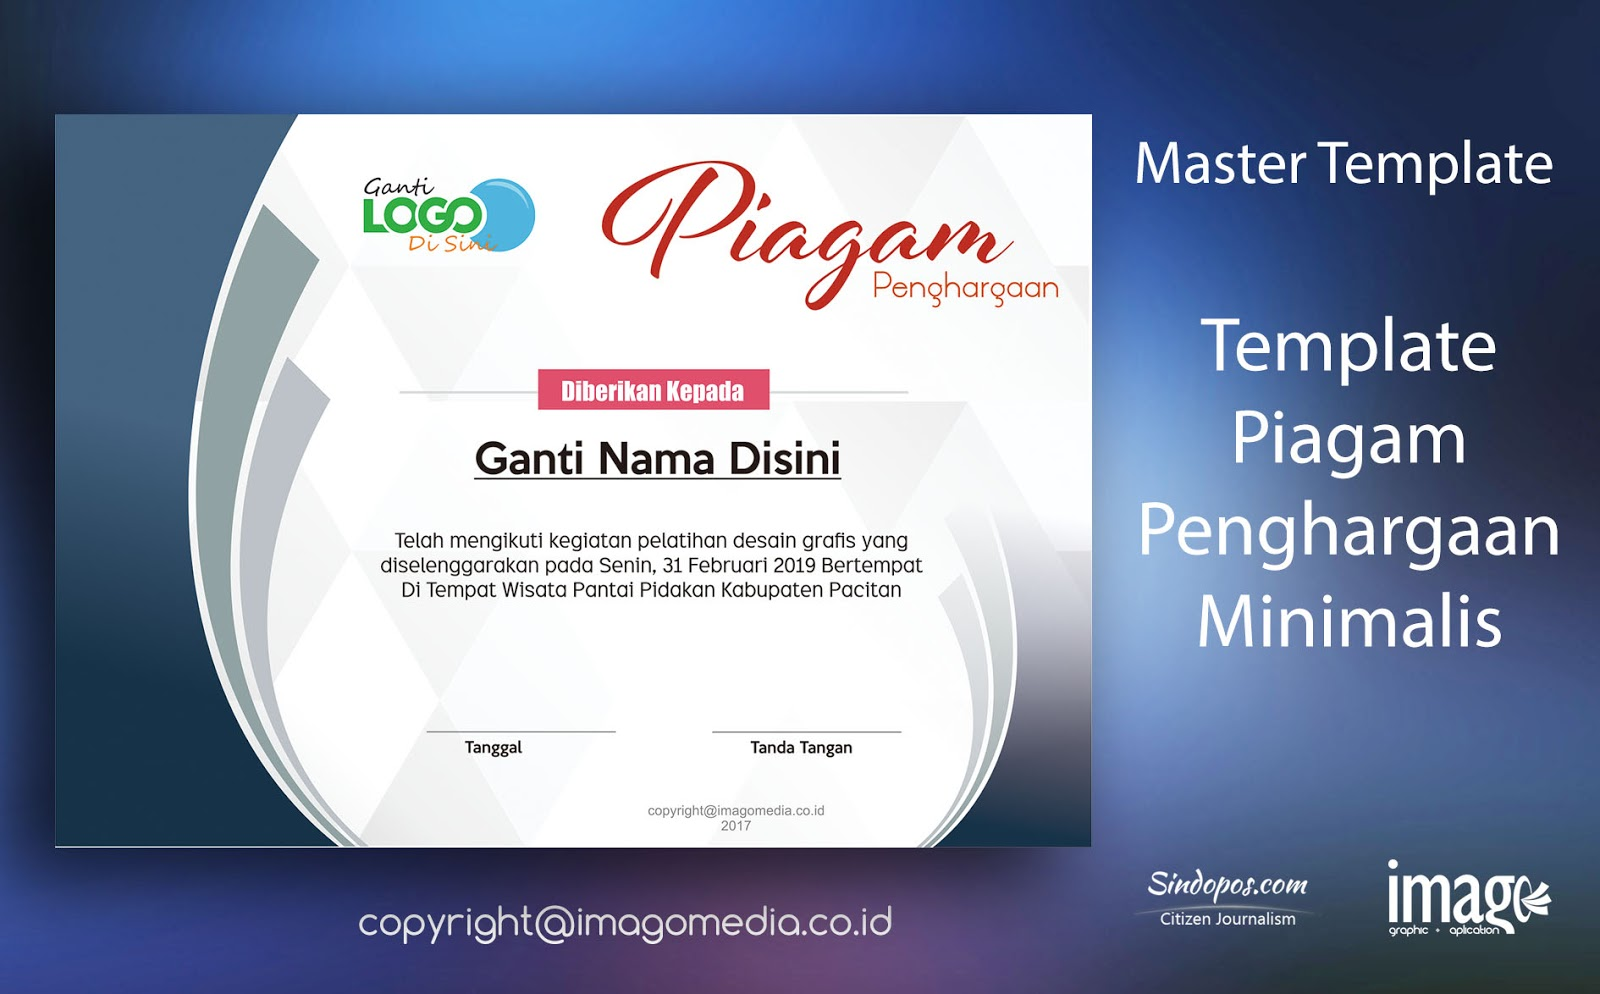 Download Contoh Piagam Penghargaan Lomba Keren Minimalis Imago Media Home Of Creativity